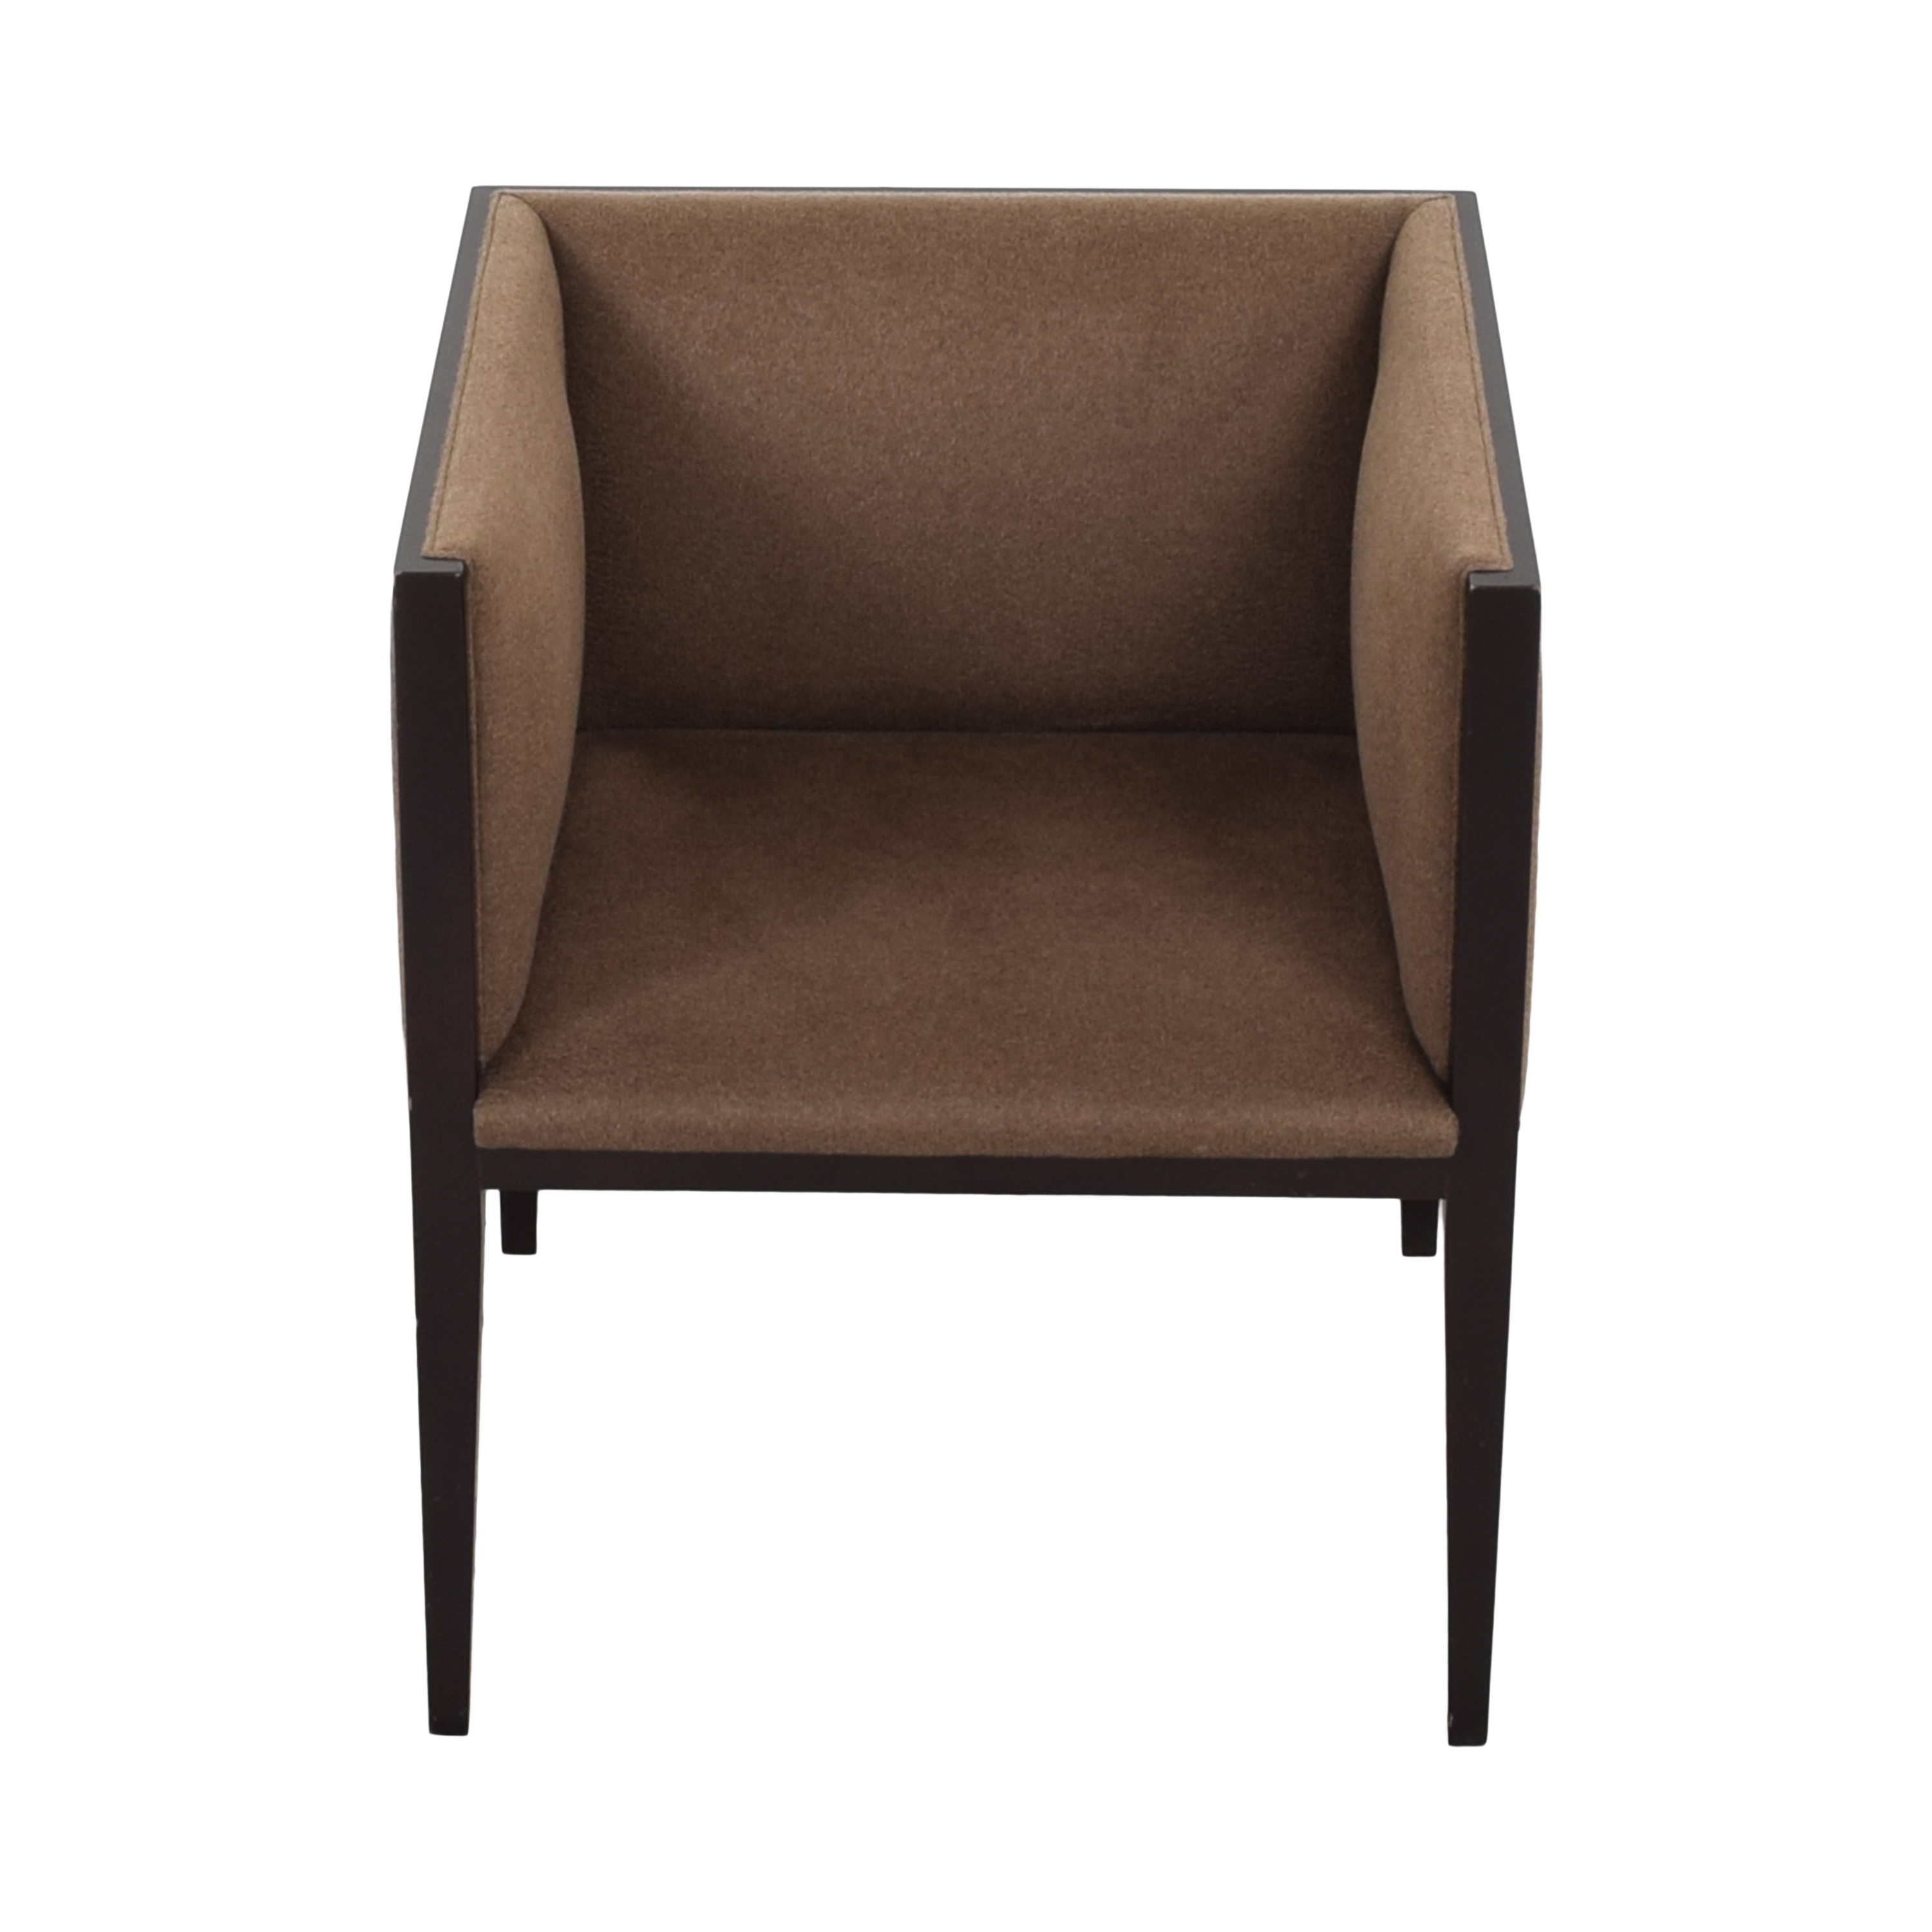 Hudson Furniture & Bedding Hudson Furniture & Bedding Contemporary Dining Chair price